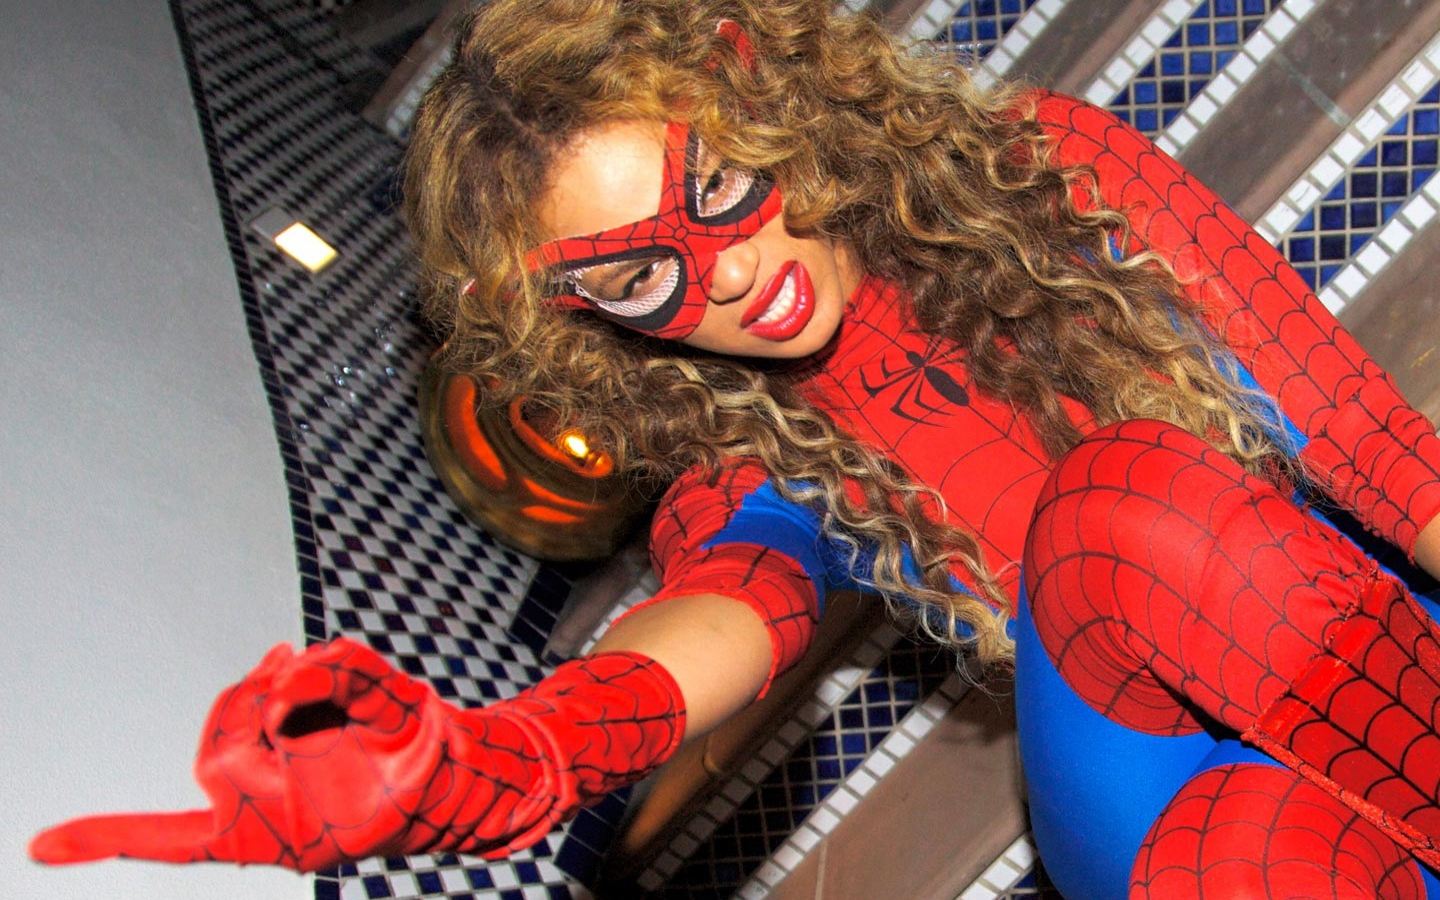 Beyonce Spiderman Halloween Costume Beyonce Spiderman Costume